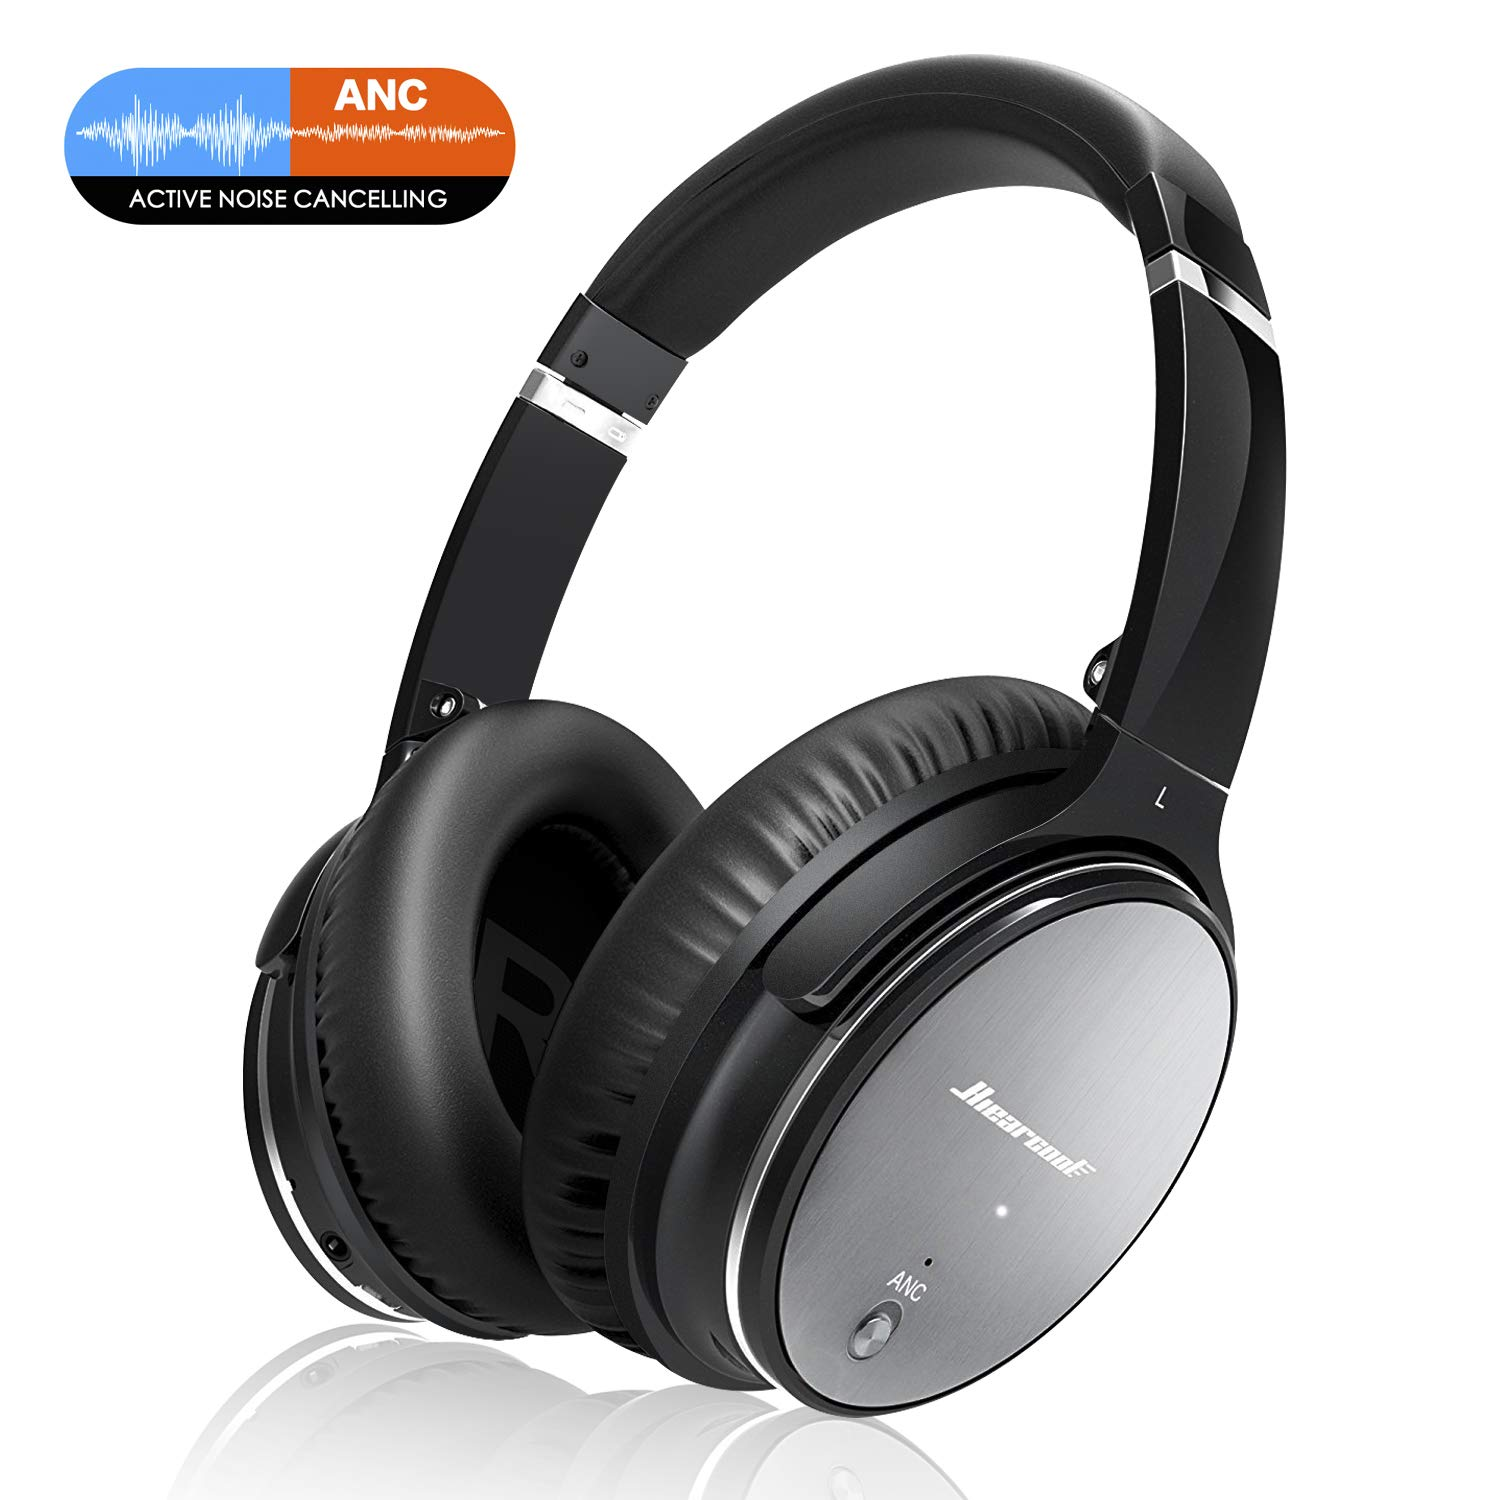 FITFORT Active Noise Cancelling Headphones